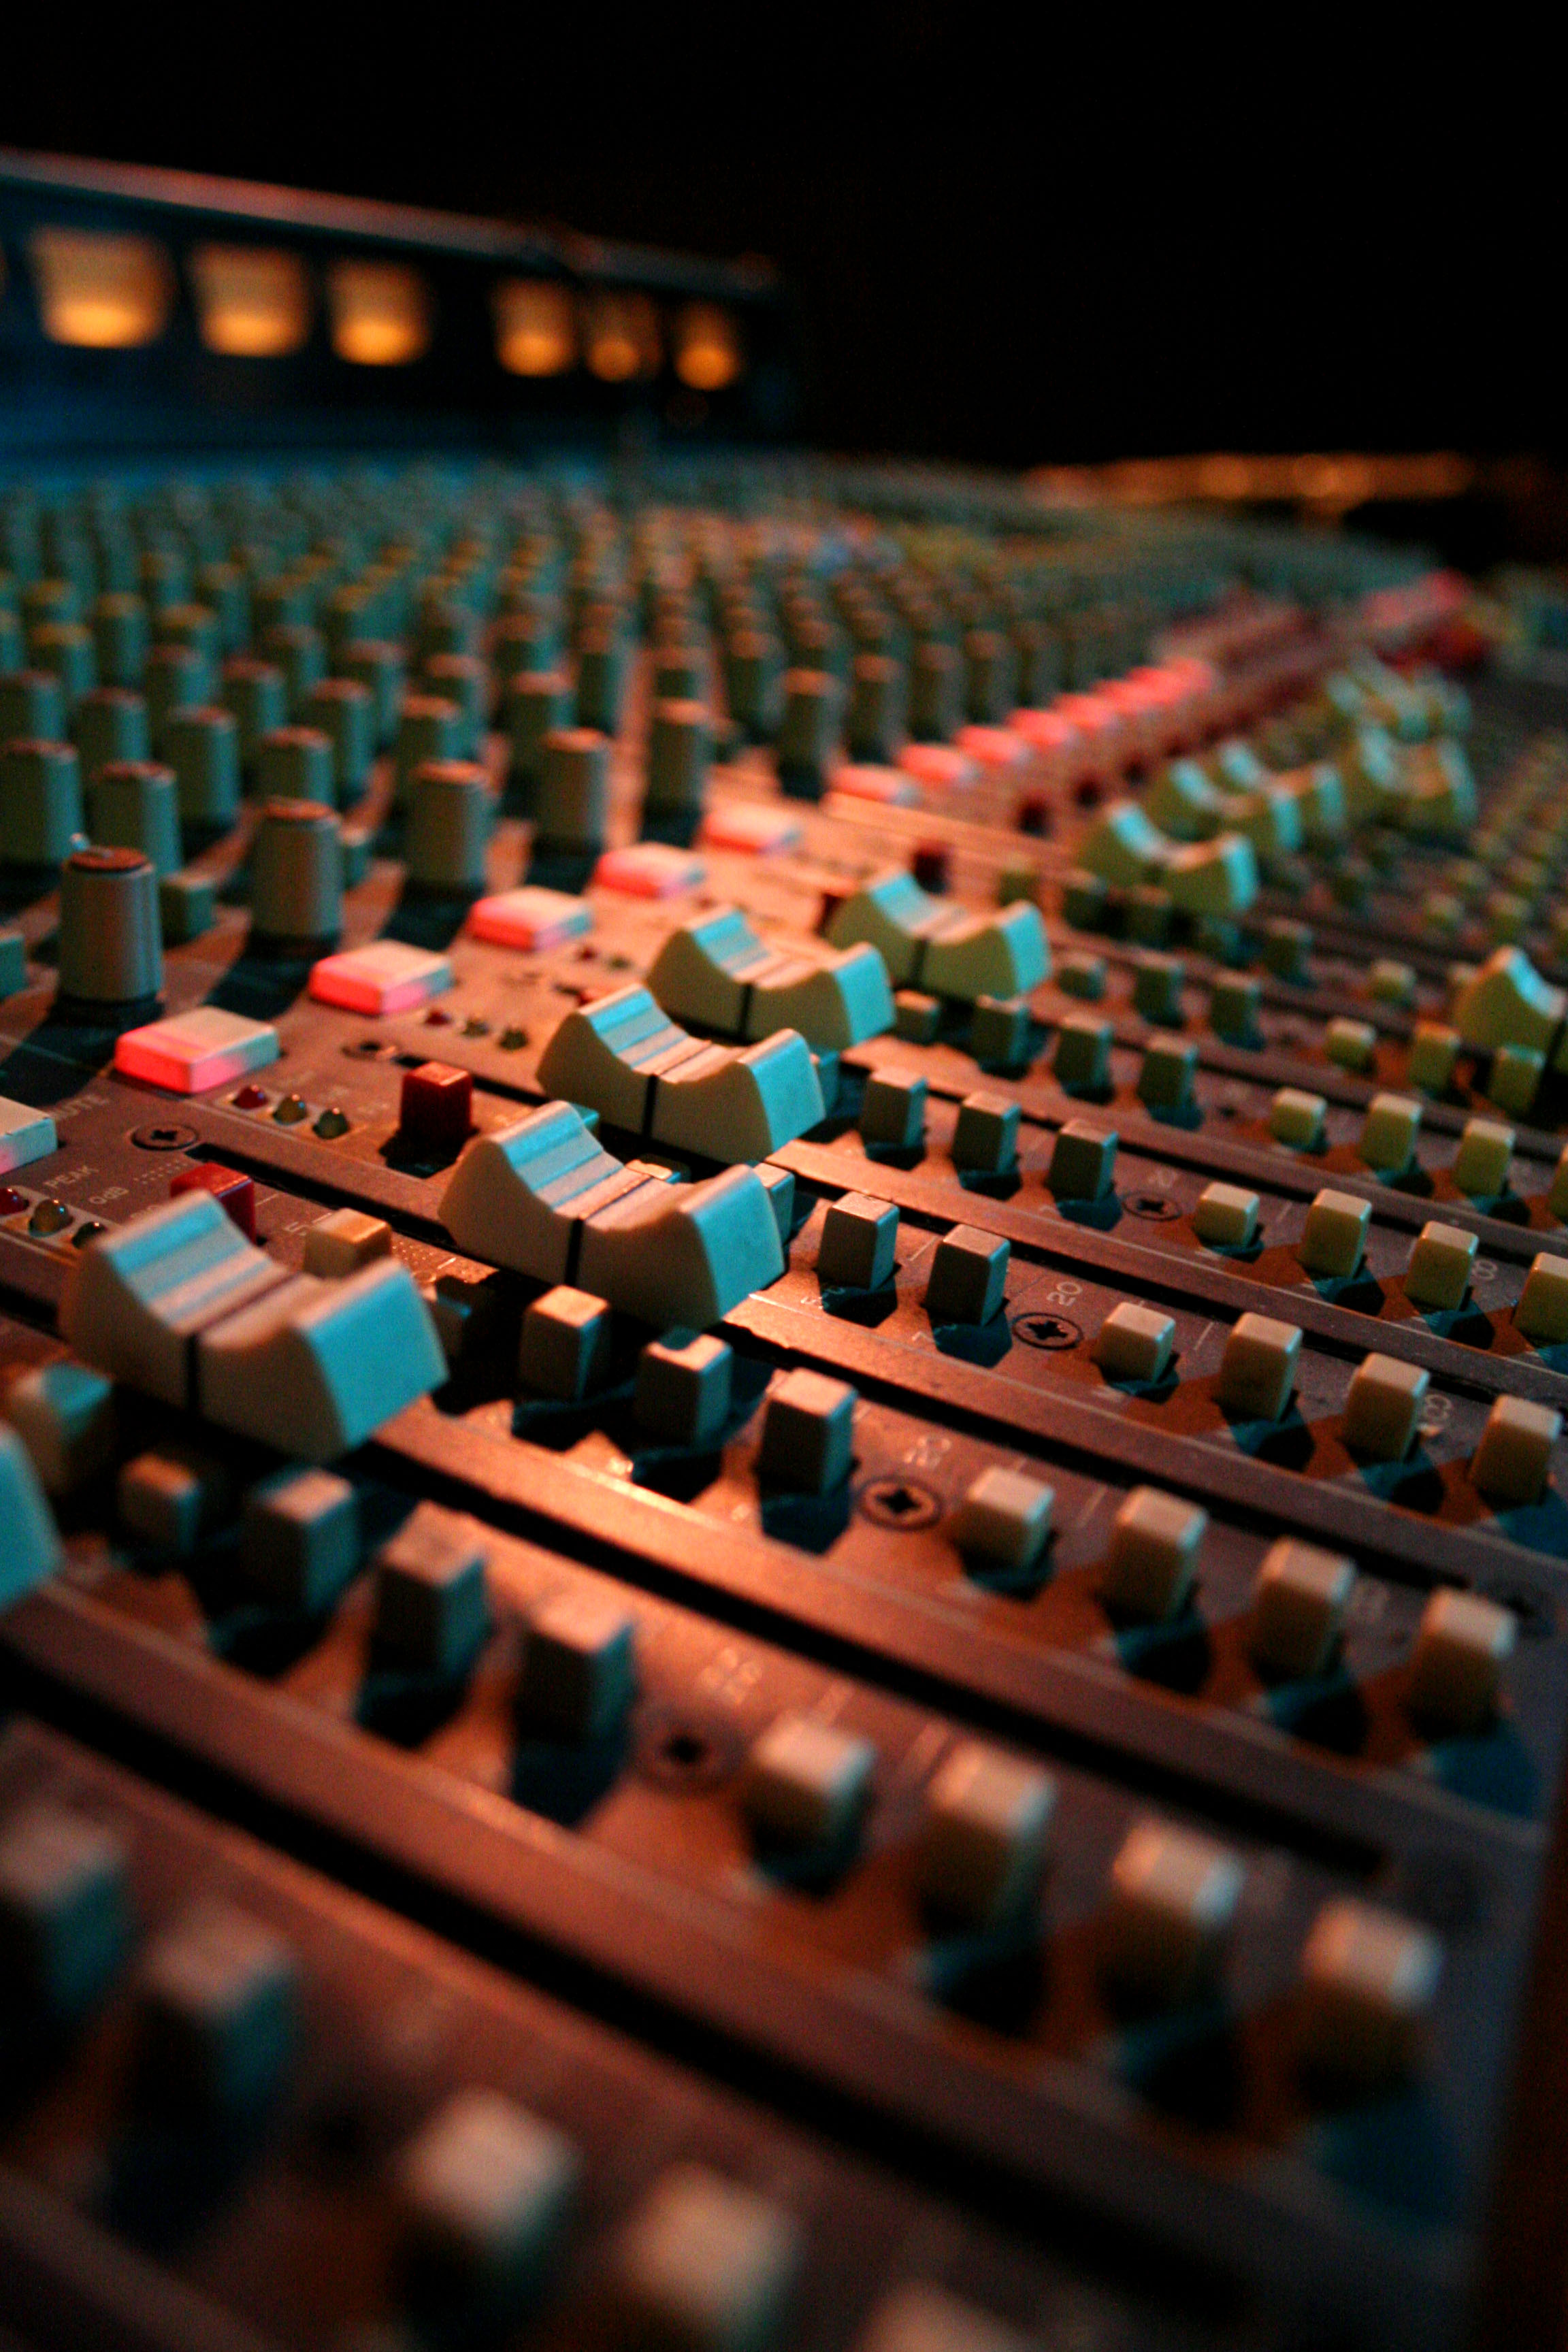 Faders on a mixing board. Foto: Biggerbyfar~commonswiki(Creative Commons Attribution-Share Alike 2.5 Generic)